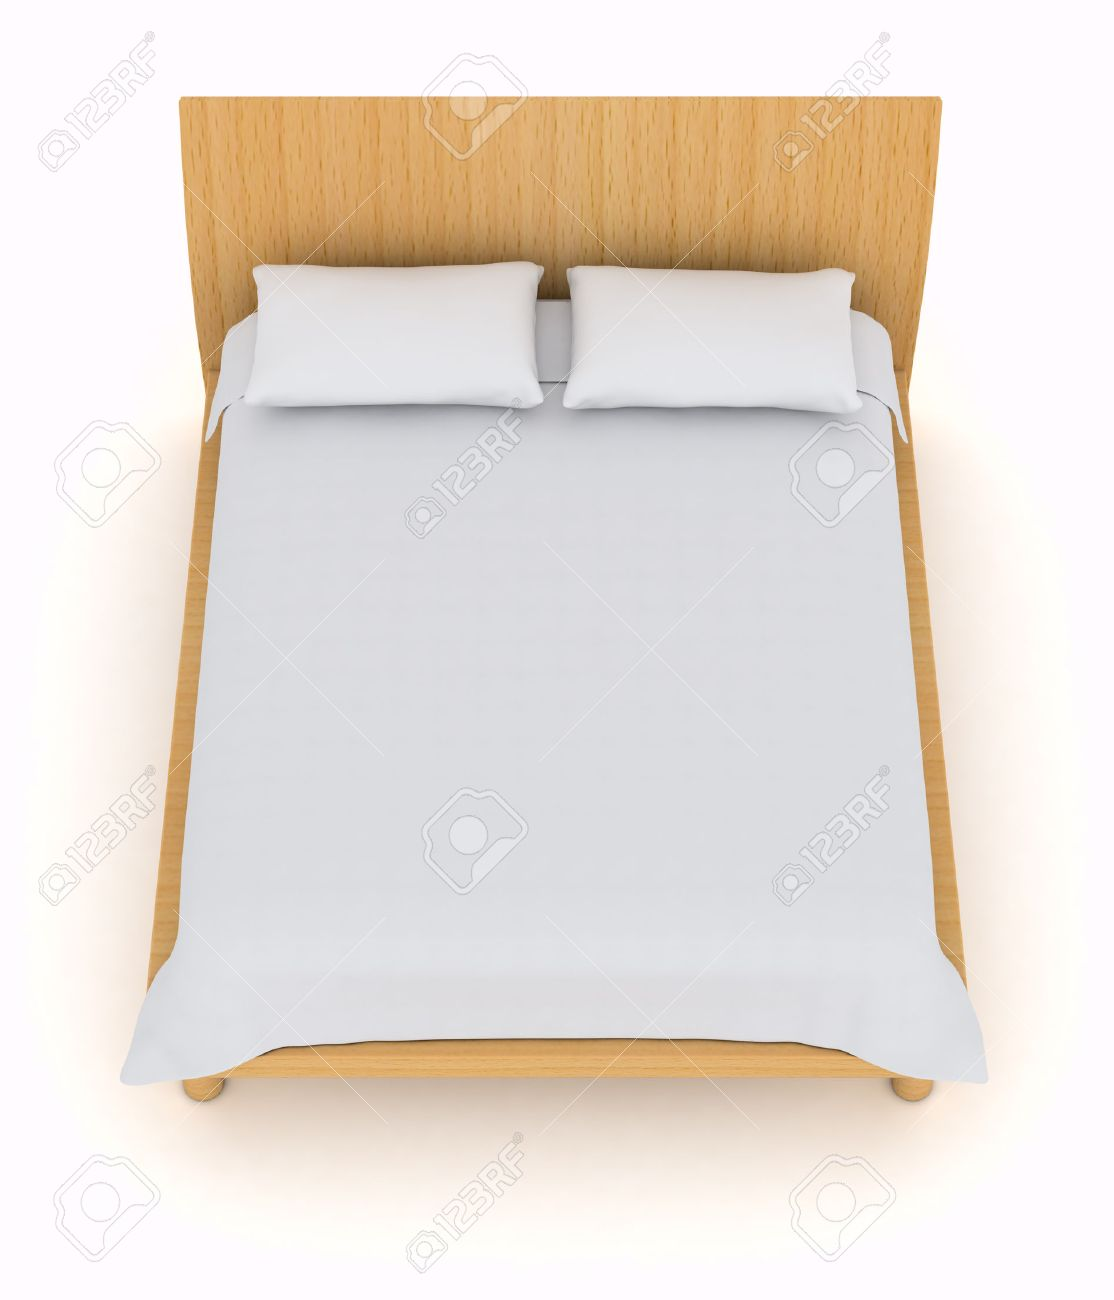 Double bed top view - Top View Of A Double Bed With White Pillows And Blanket 3d Render Stock